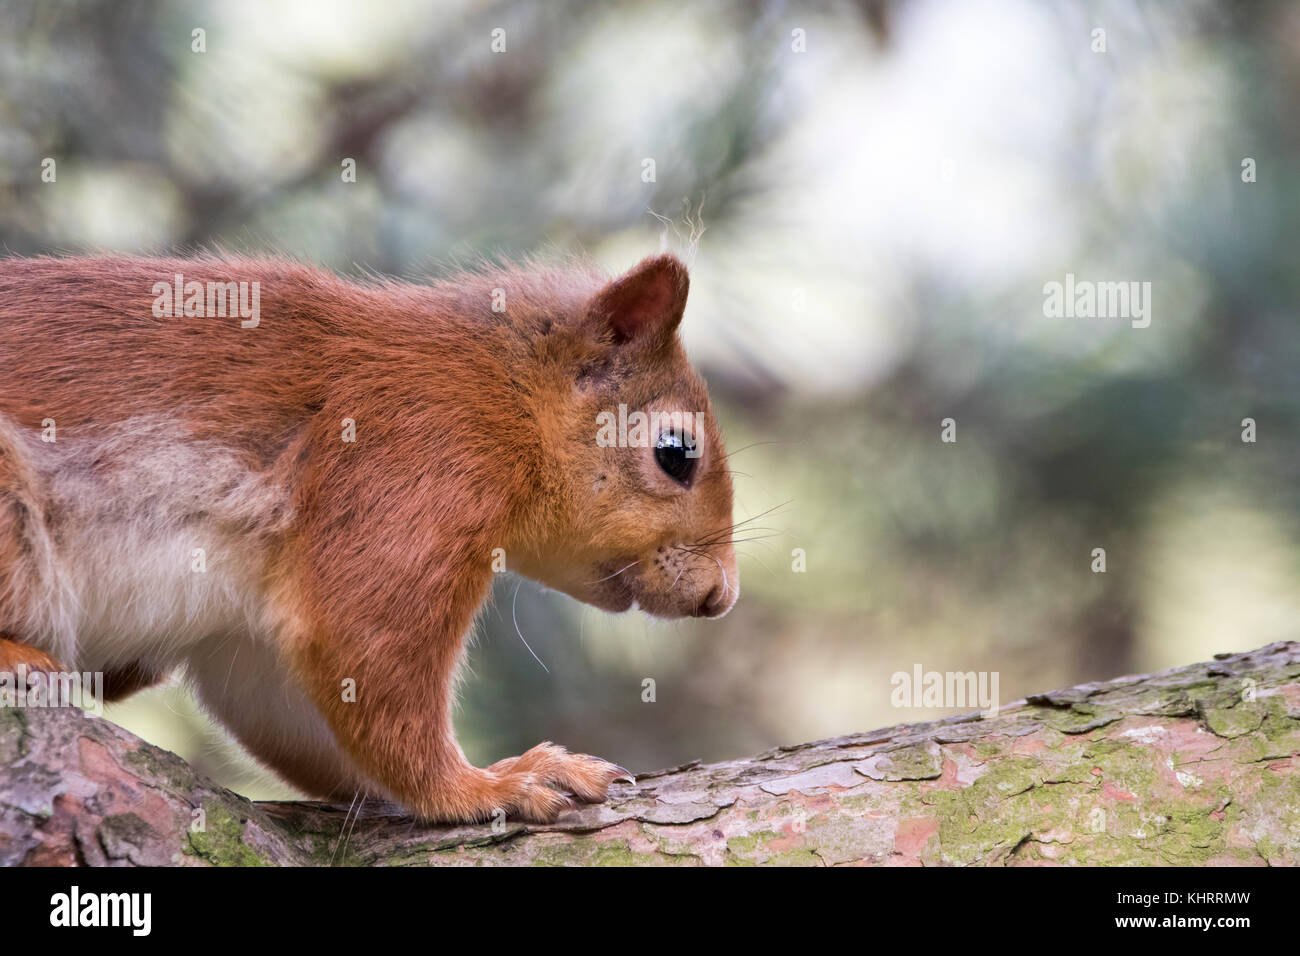 red squirrel, Sciurus vulgaris, euroasian, close up portrait amongst pine woodland and feeders near Lossiemouth, - Stock Image